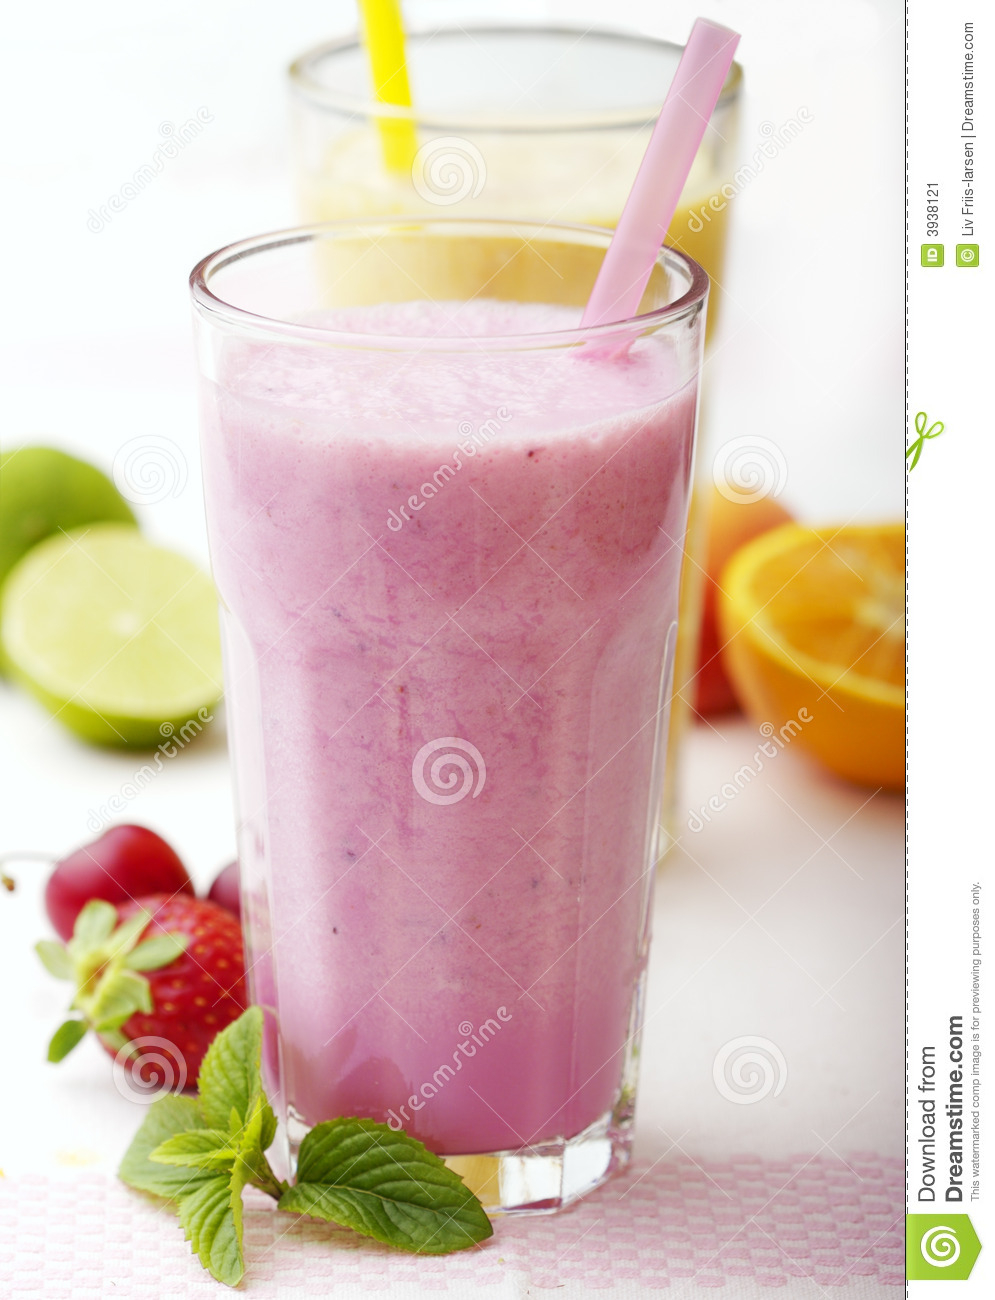 Mixed fruit smoothies surrounded by fresh fruit.